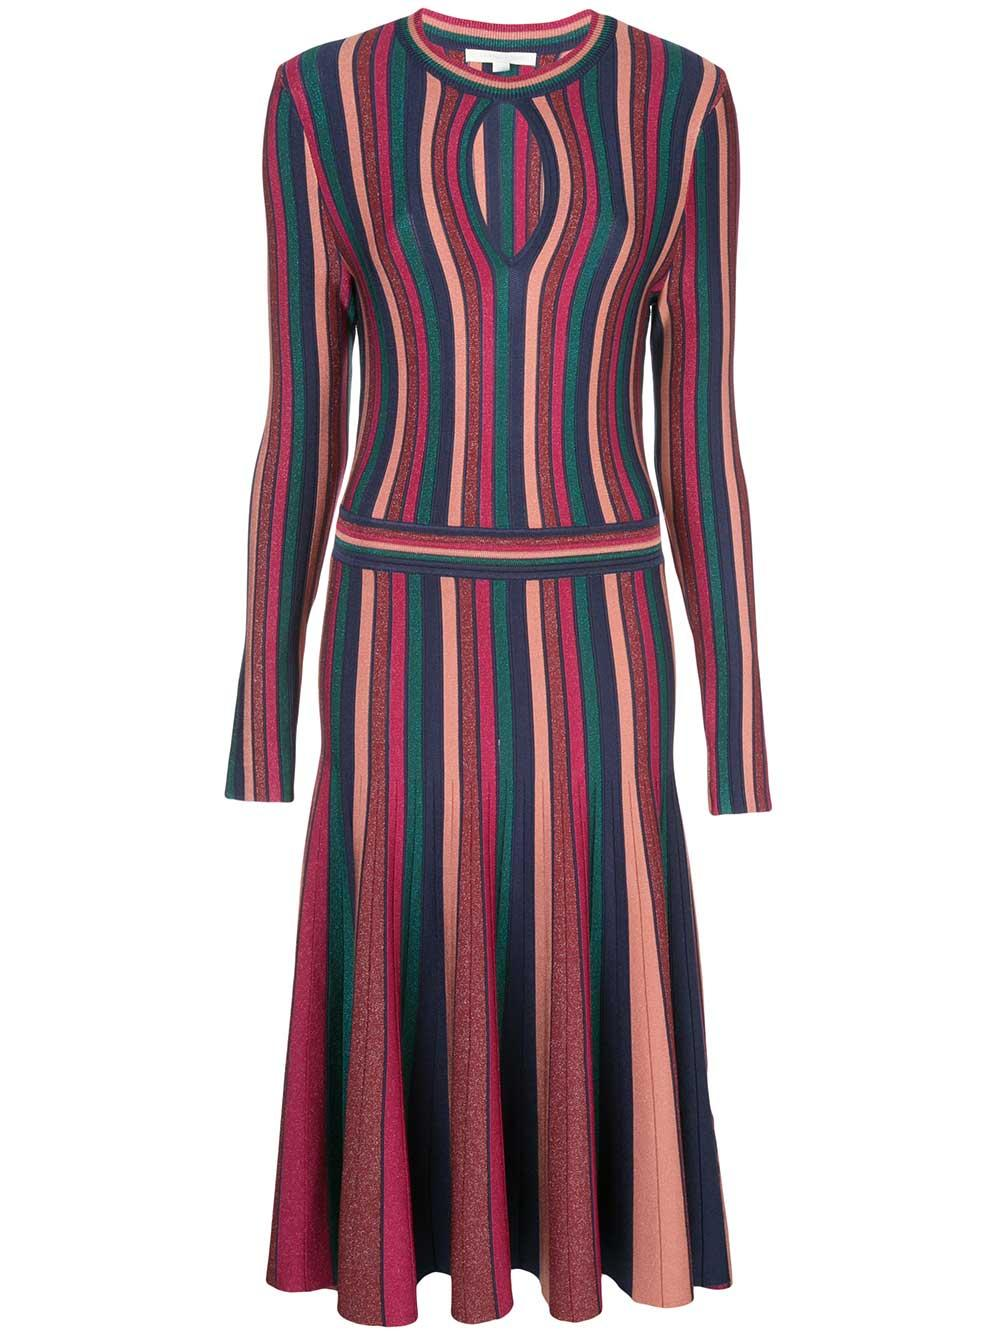 Long Sleeve Metallic Stripe Keyhole Dress